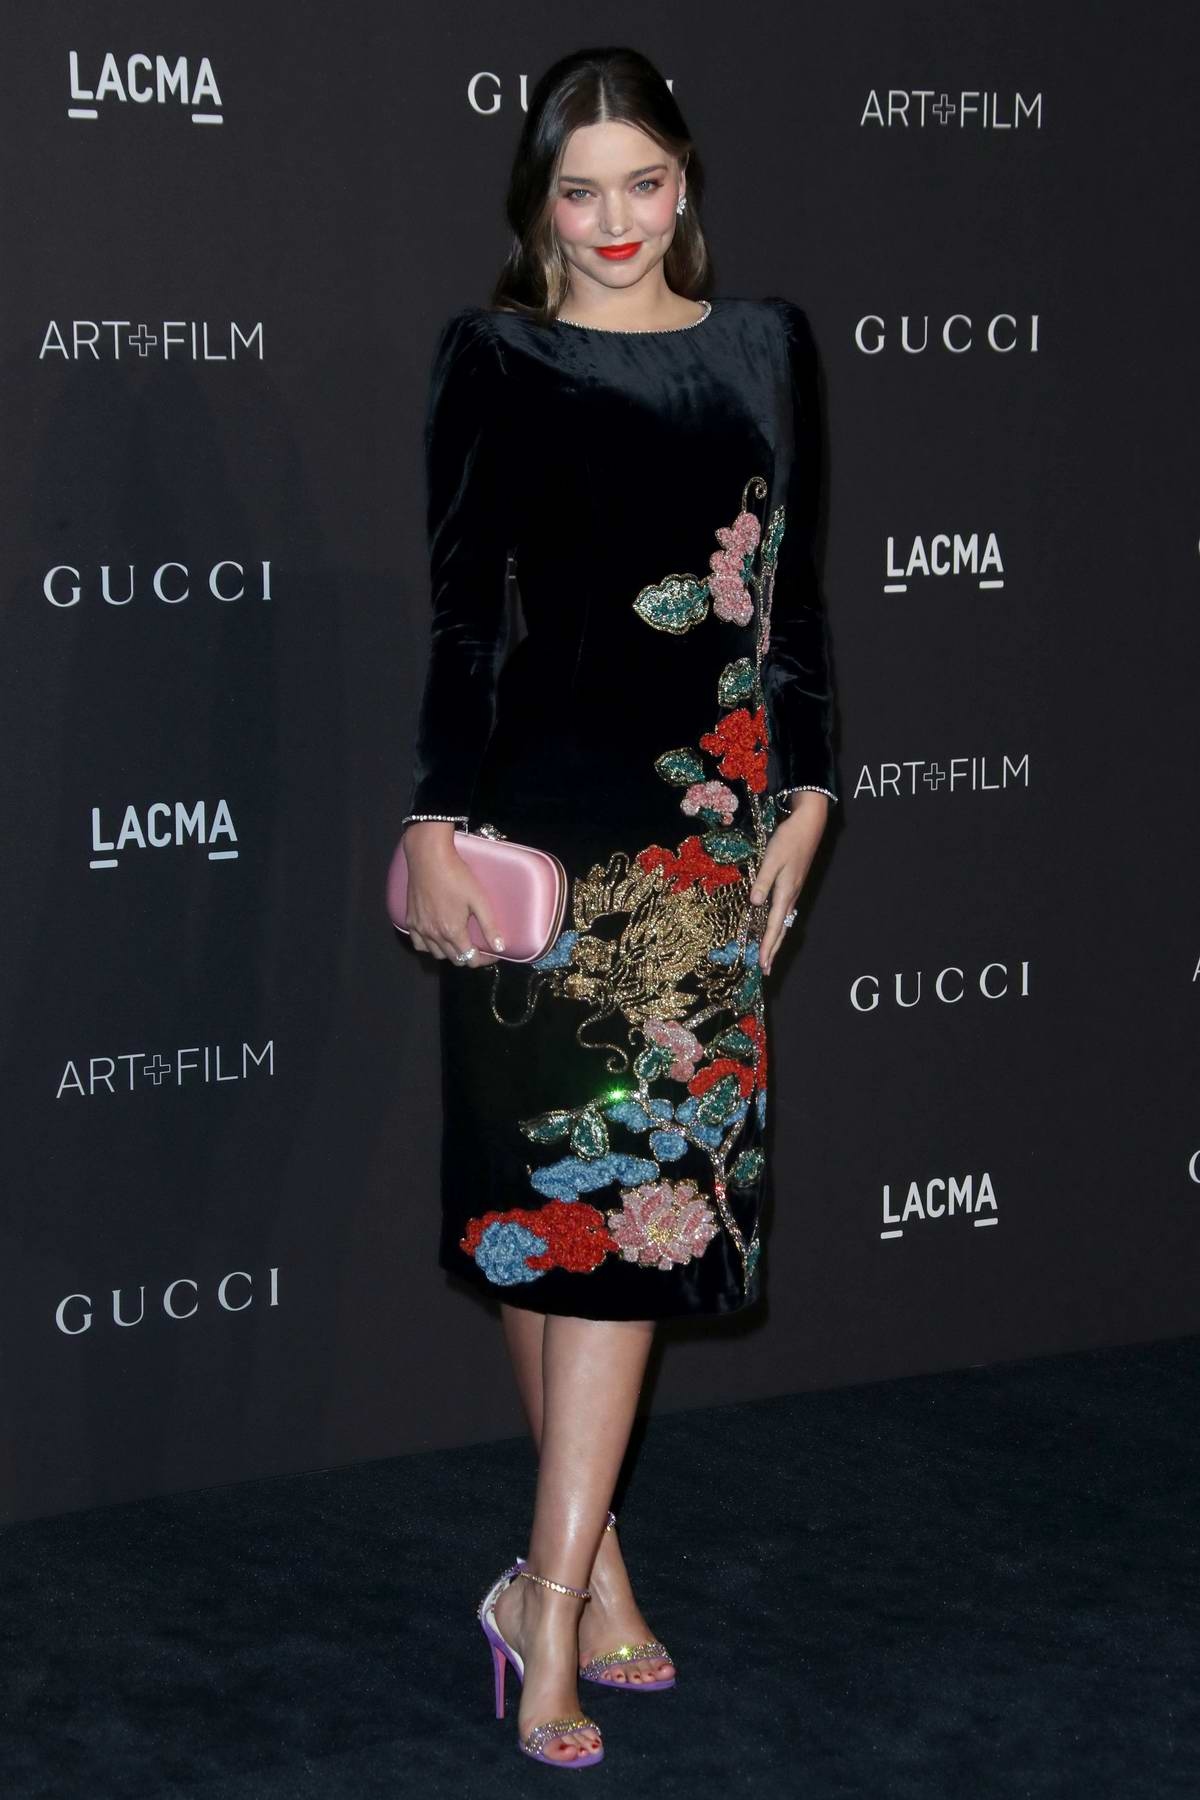 Miranda Kerr attends The 2018 LACMA Art + Film Gala in Los Angeles